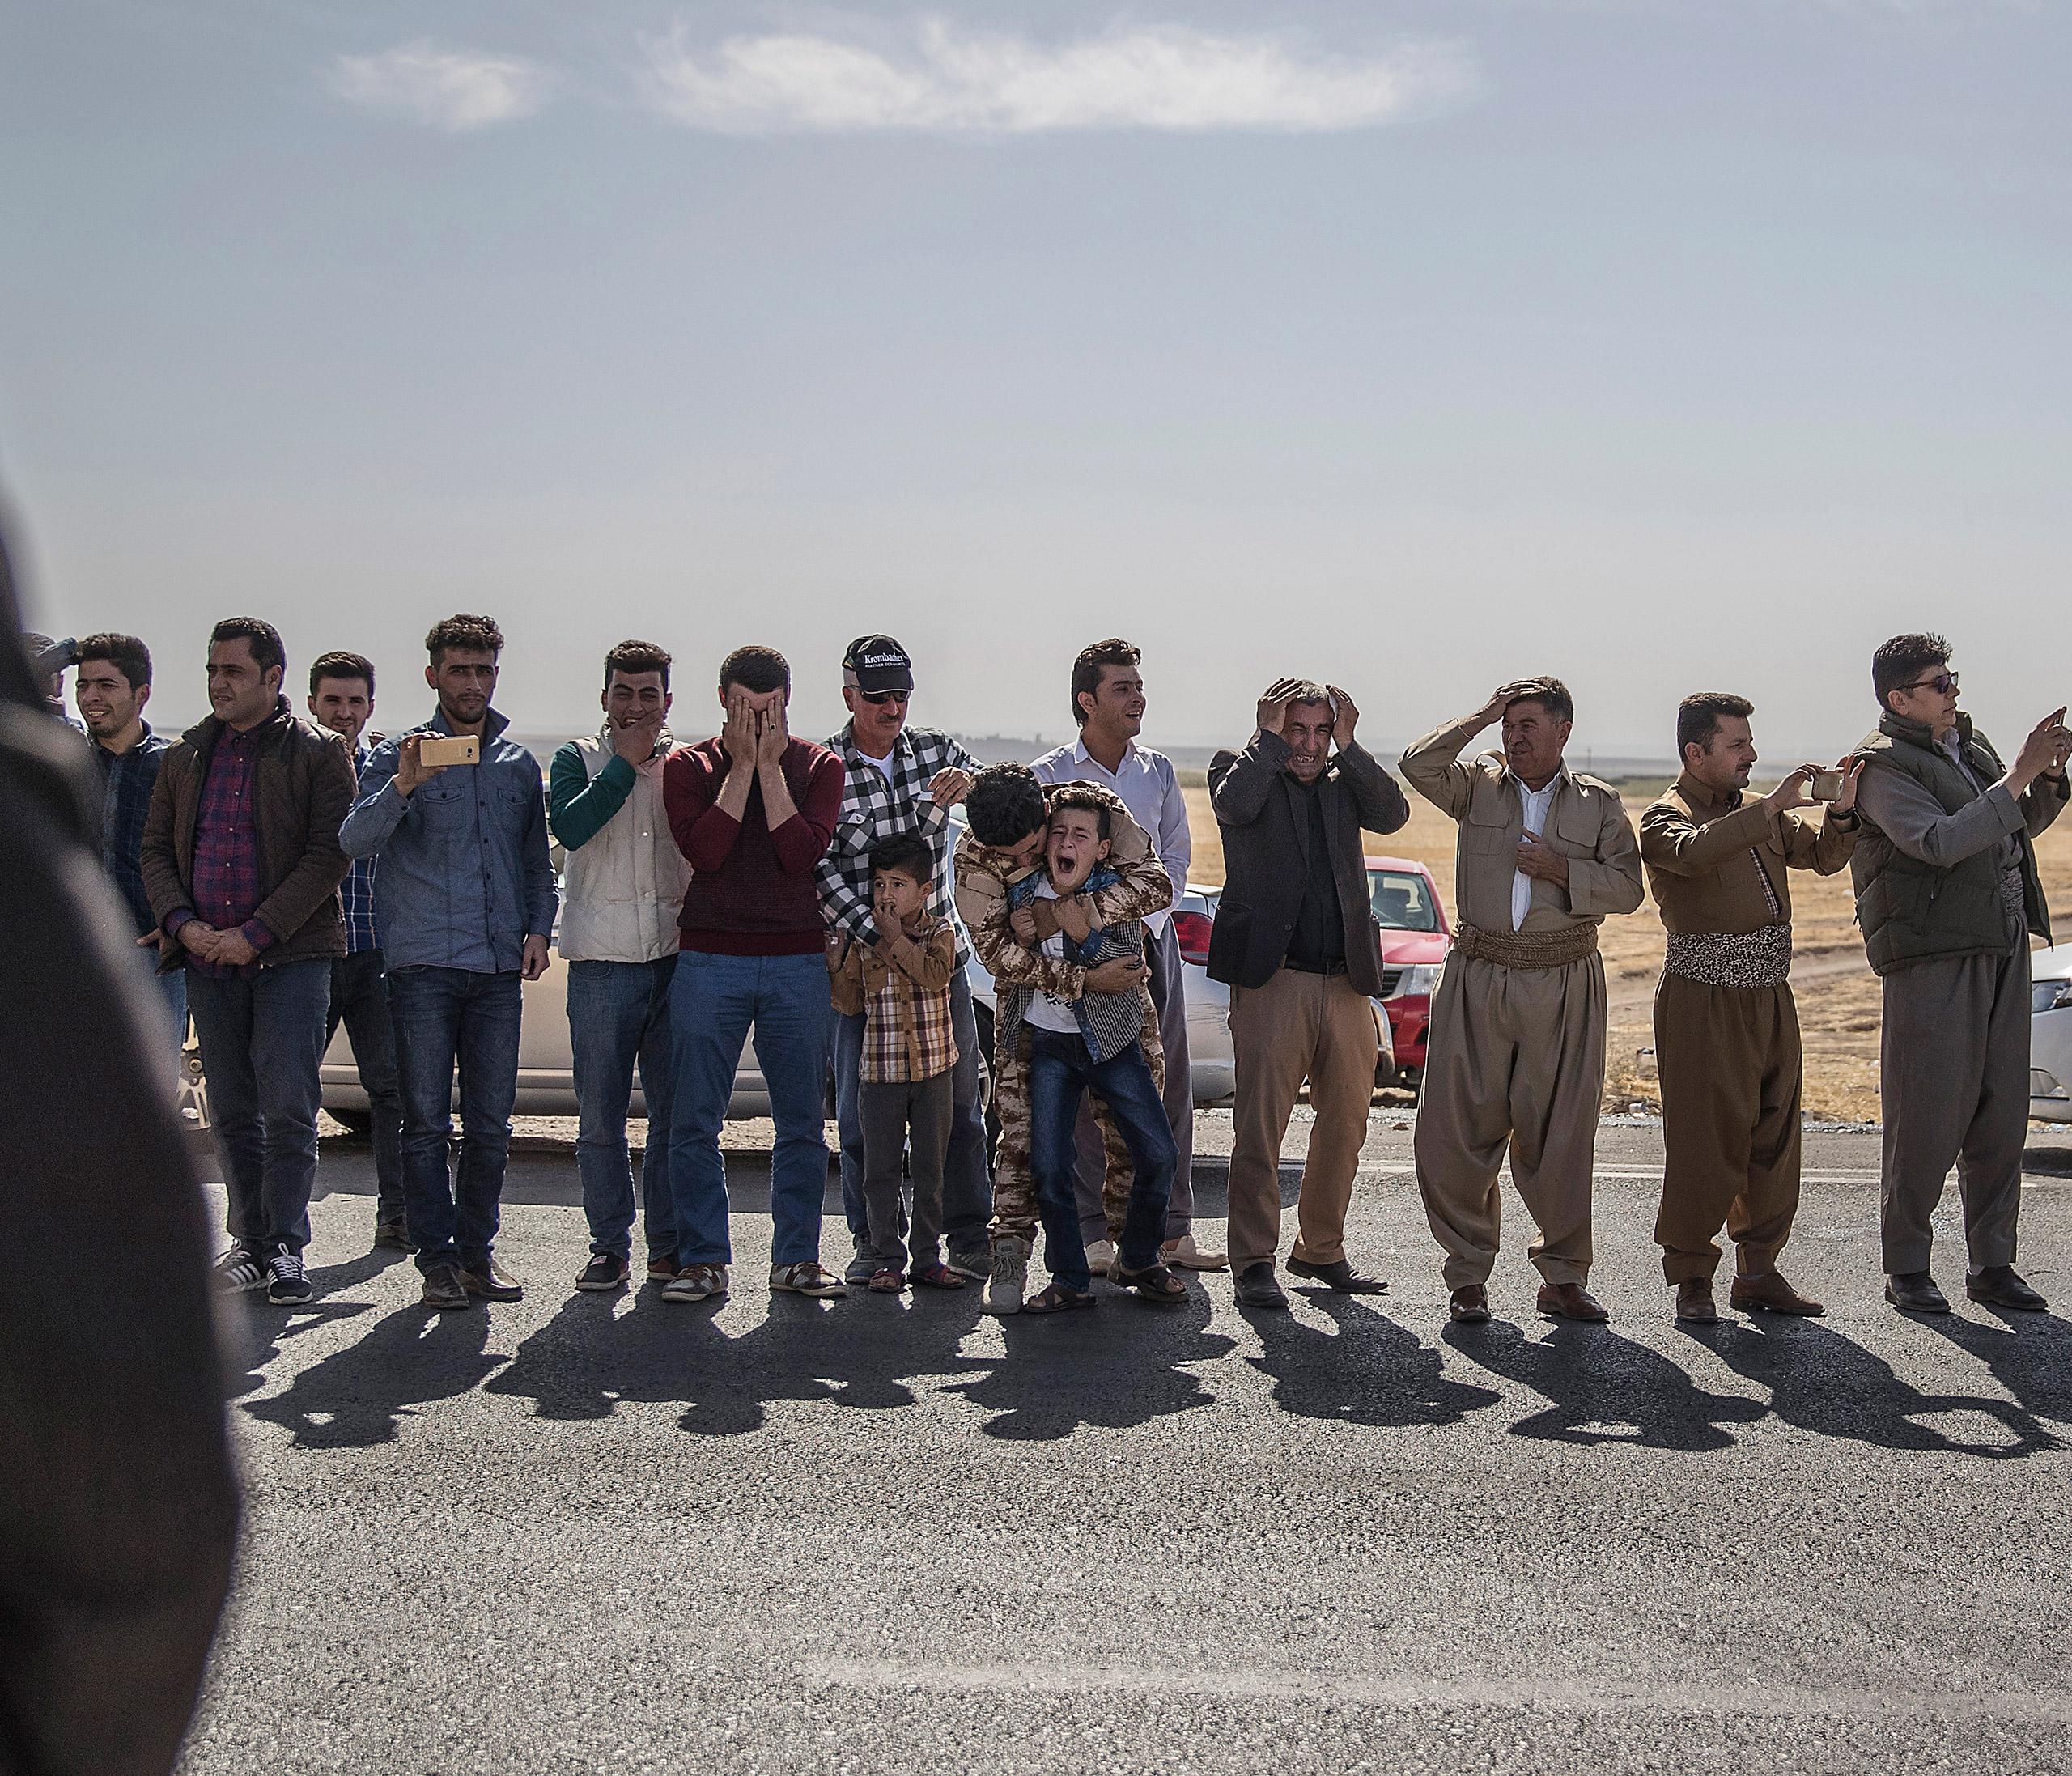 Thousands of people gather at the funeral of five Peshmerga soldiers killed by an IED explosion. One of the dead soldier's sons, Lefaws, 11, breaks down and screams when the ambulance passes by  with an image of his father mounted on the front of the car. Behind him, his brother, Shalews, silently cries. Khalifa, Iraq, Oct. 2016.